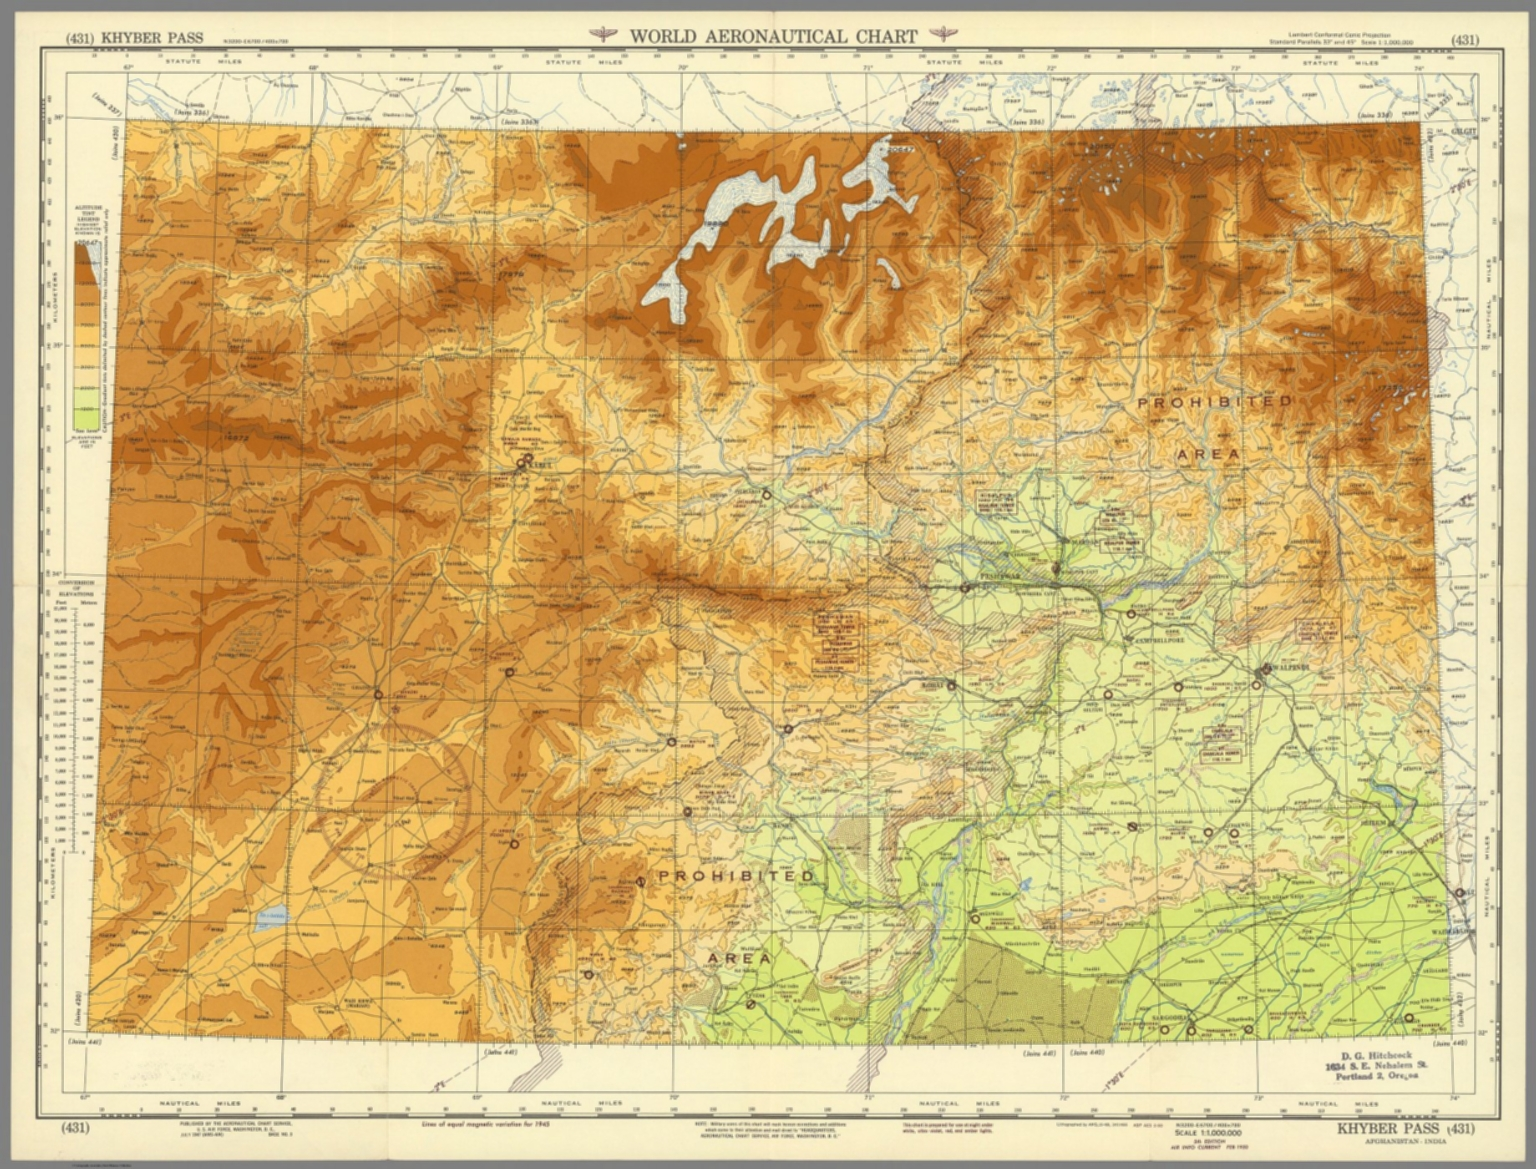 World aeronautical chart khyber pass 431 david rumsey georeference this map buy print export gumiabroncs Image collections